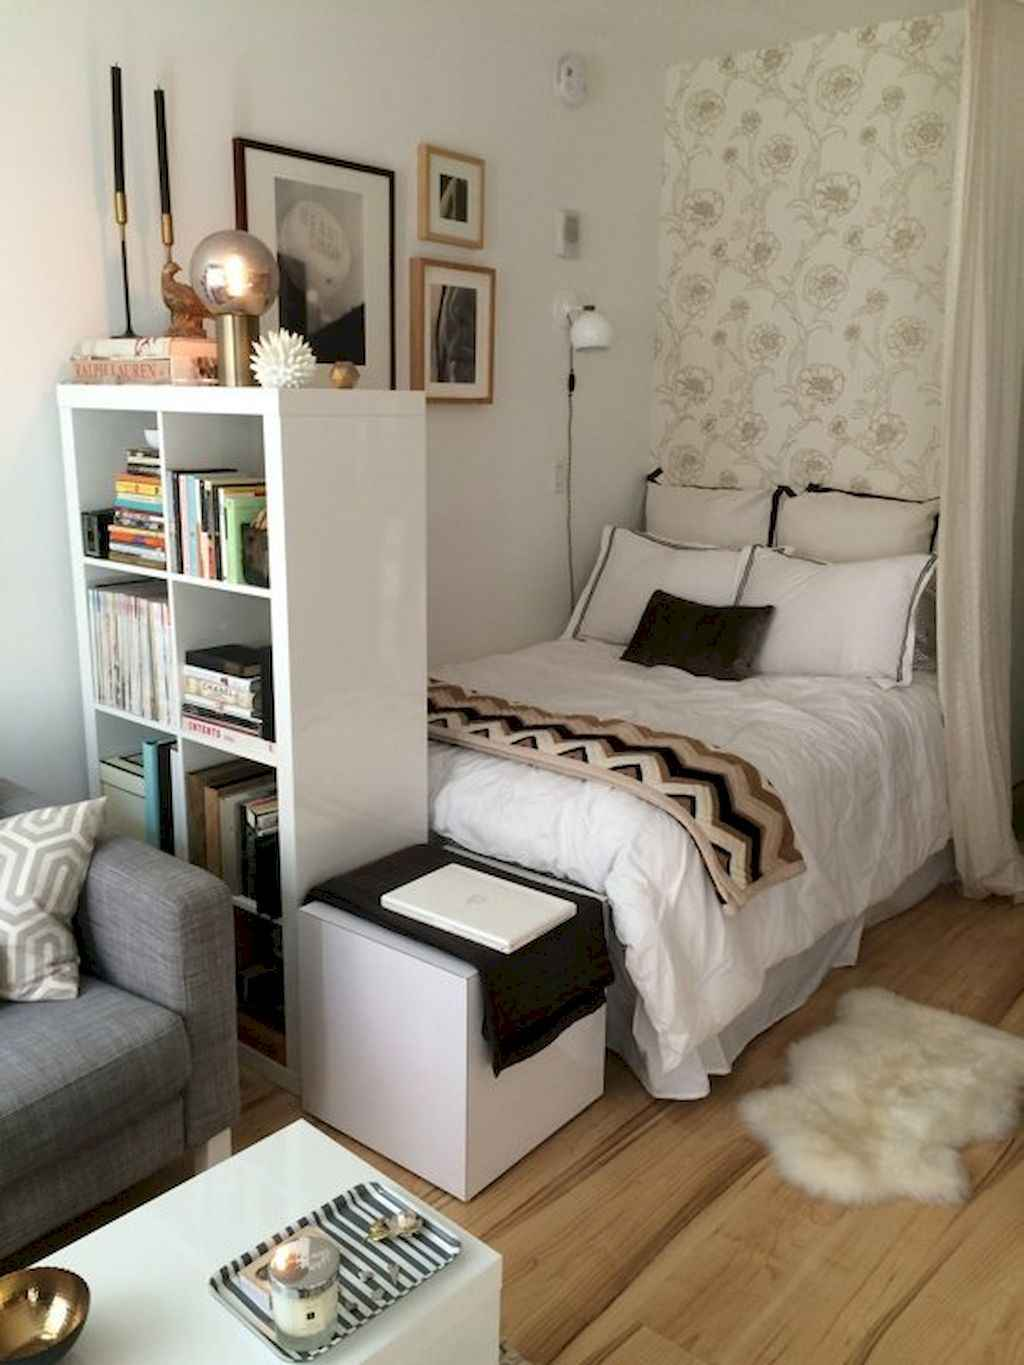 Small apartment studio decorating ideas on a budget (46)